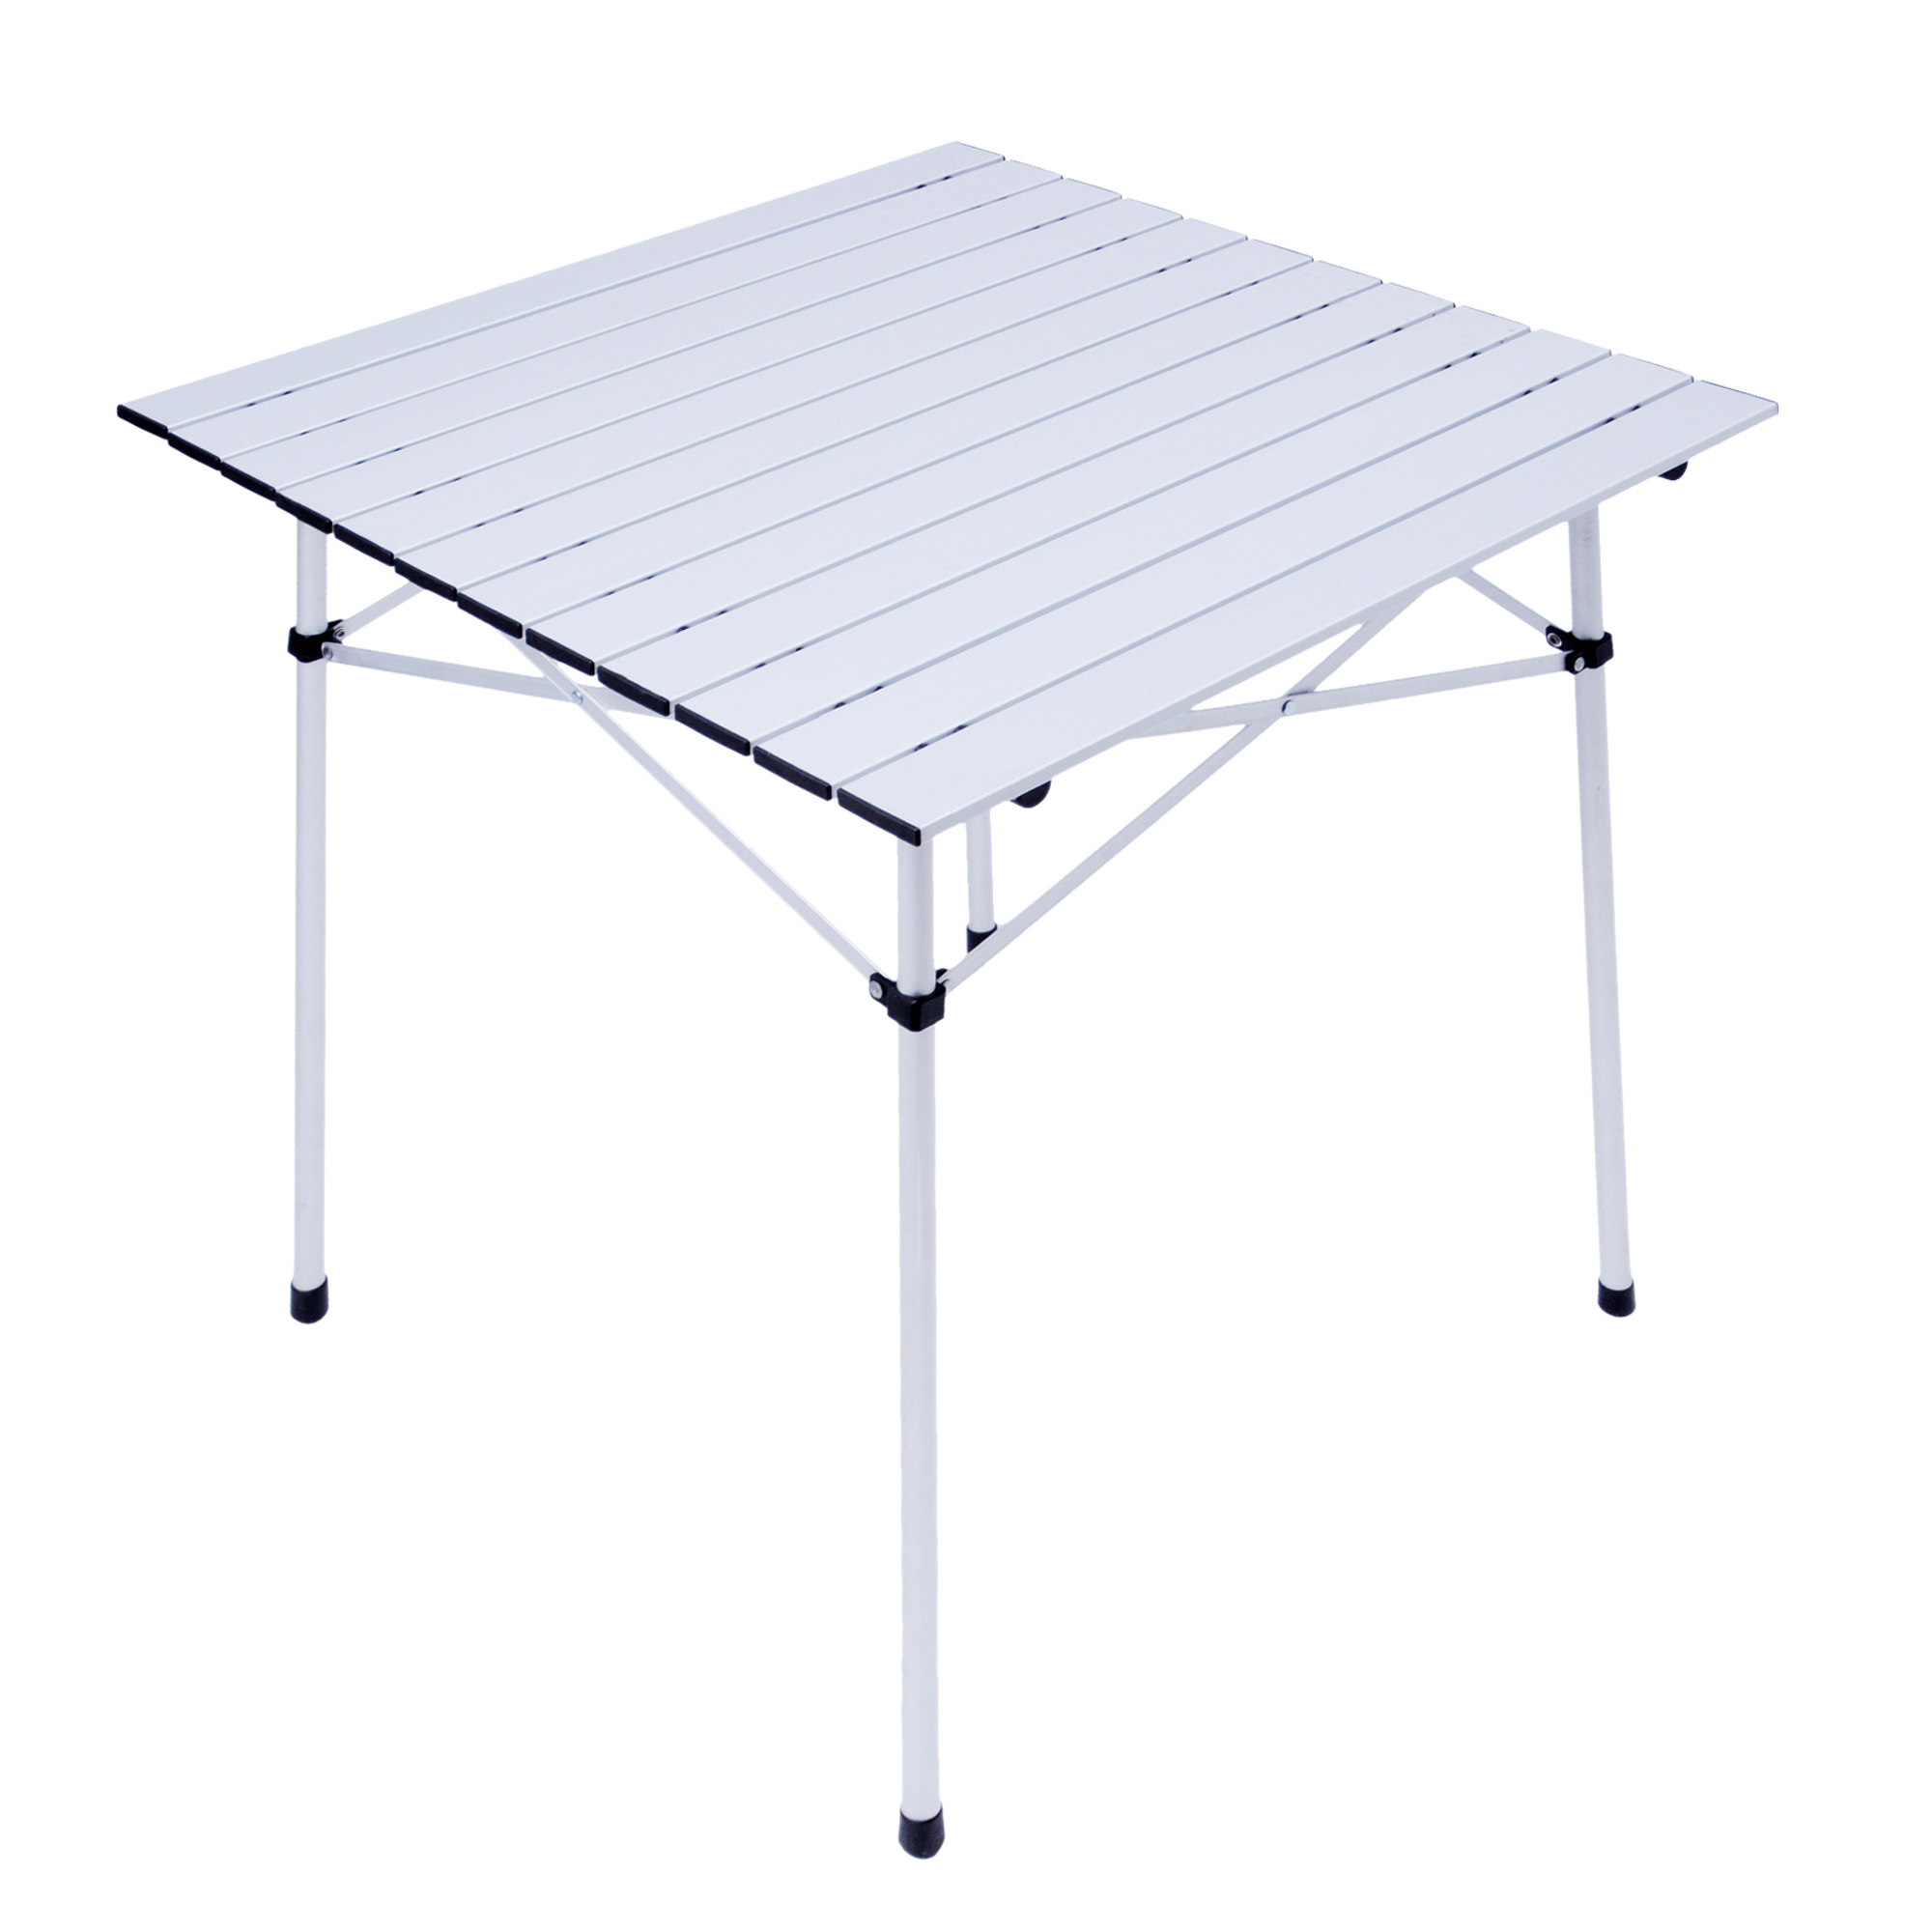 Movaty Camping Table 22x16x16 Lightweight Aluminum Table With Carrying Bag For Outdoor And Home Easy To Clean Portable Outdoor Folding Table Camping Hiking Tables